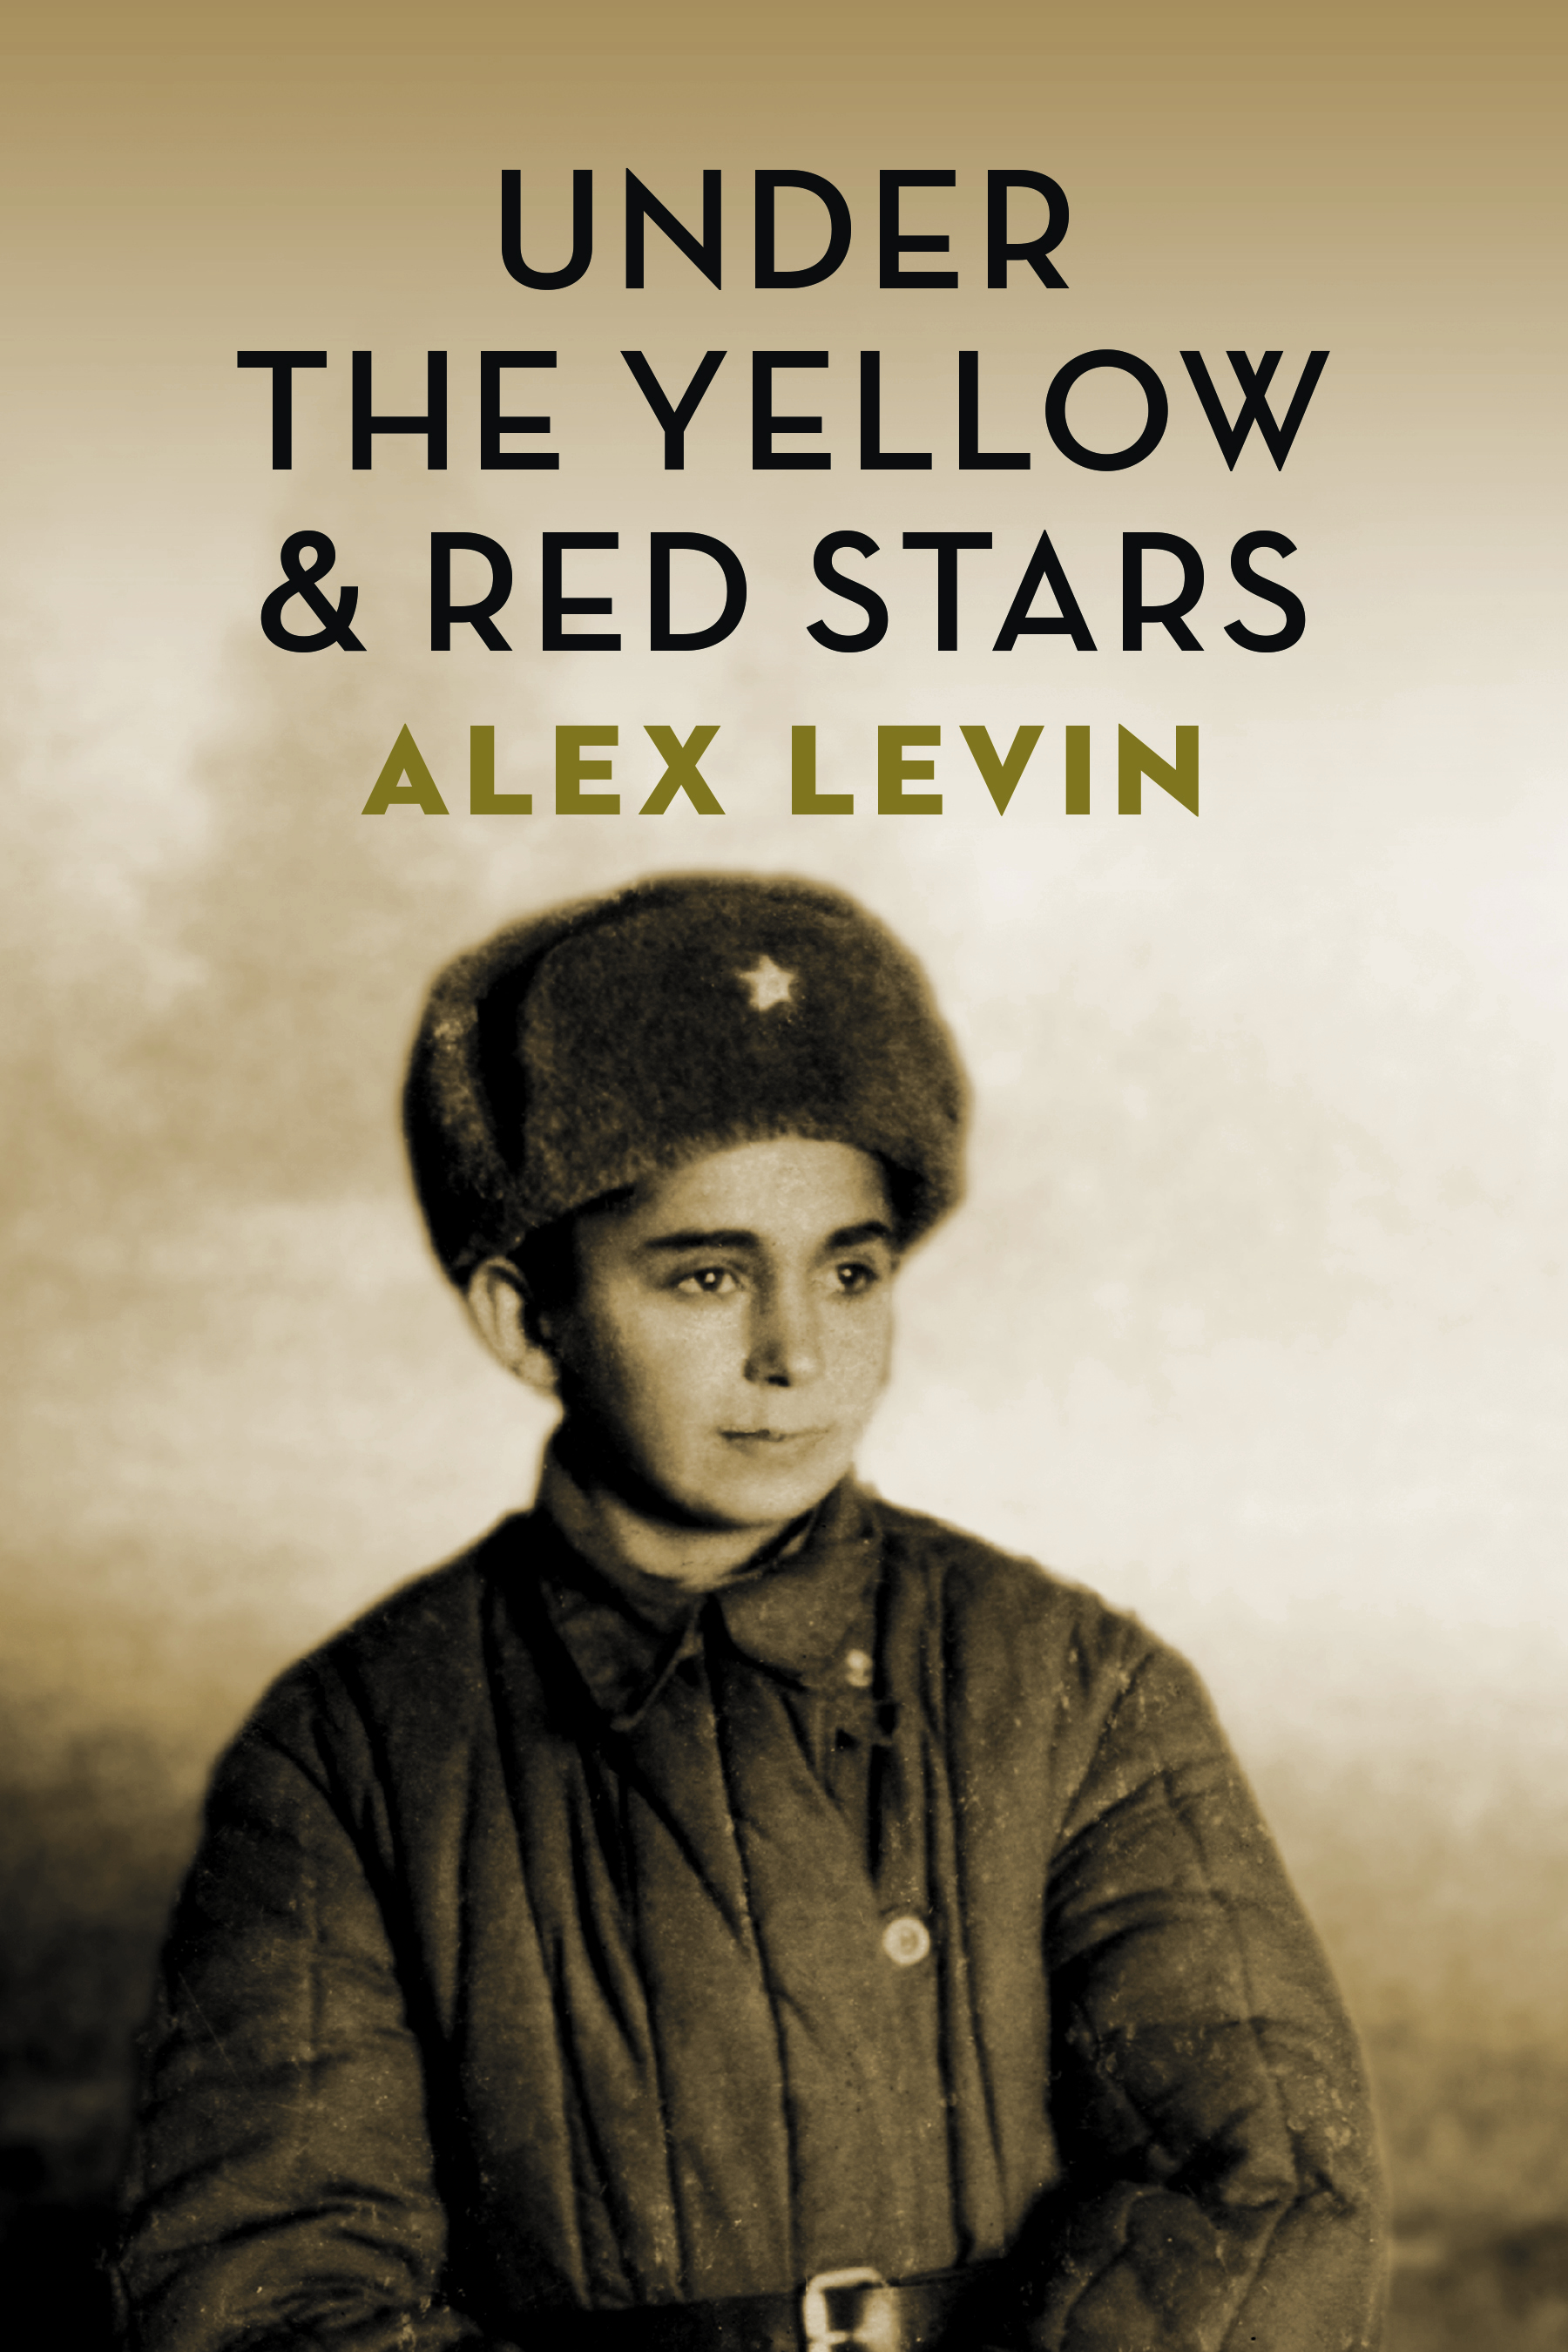 Under the Yellow & Red Stars book cover